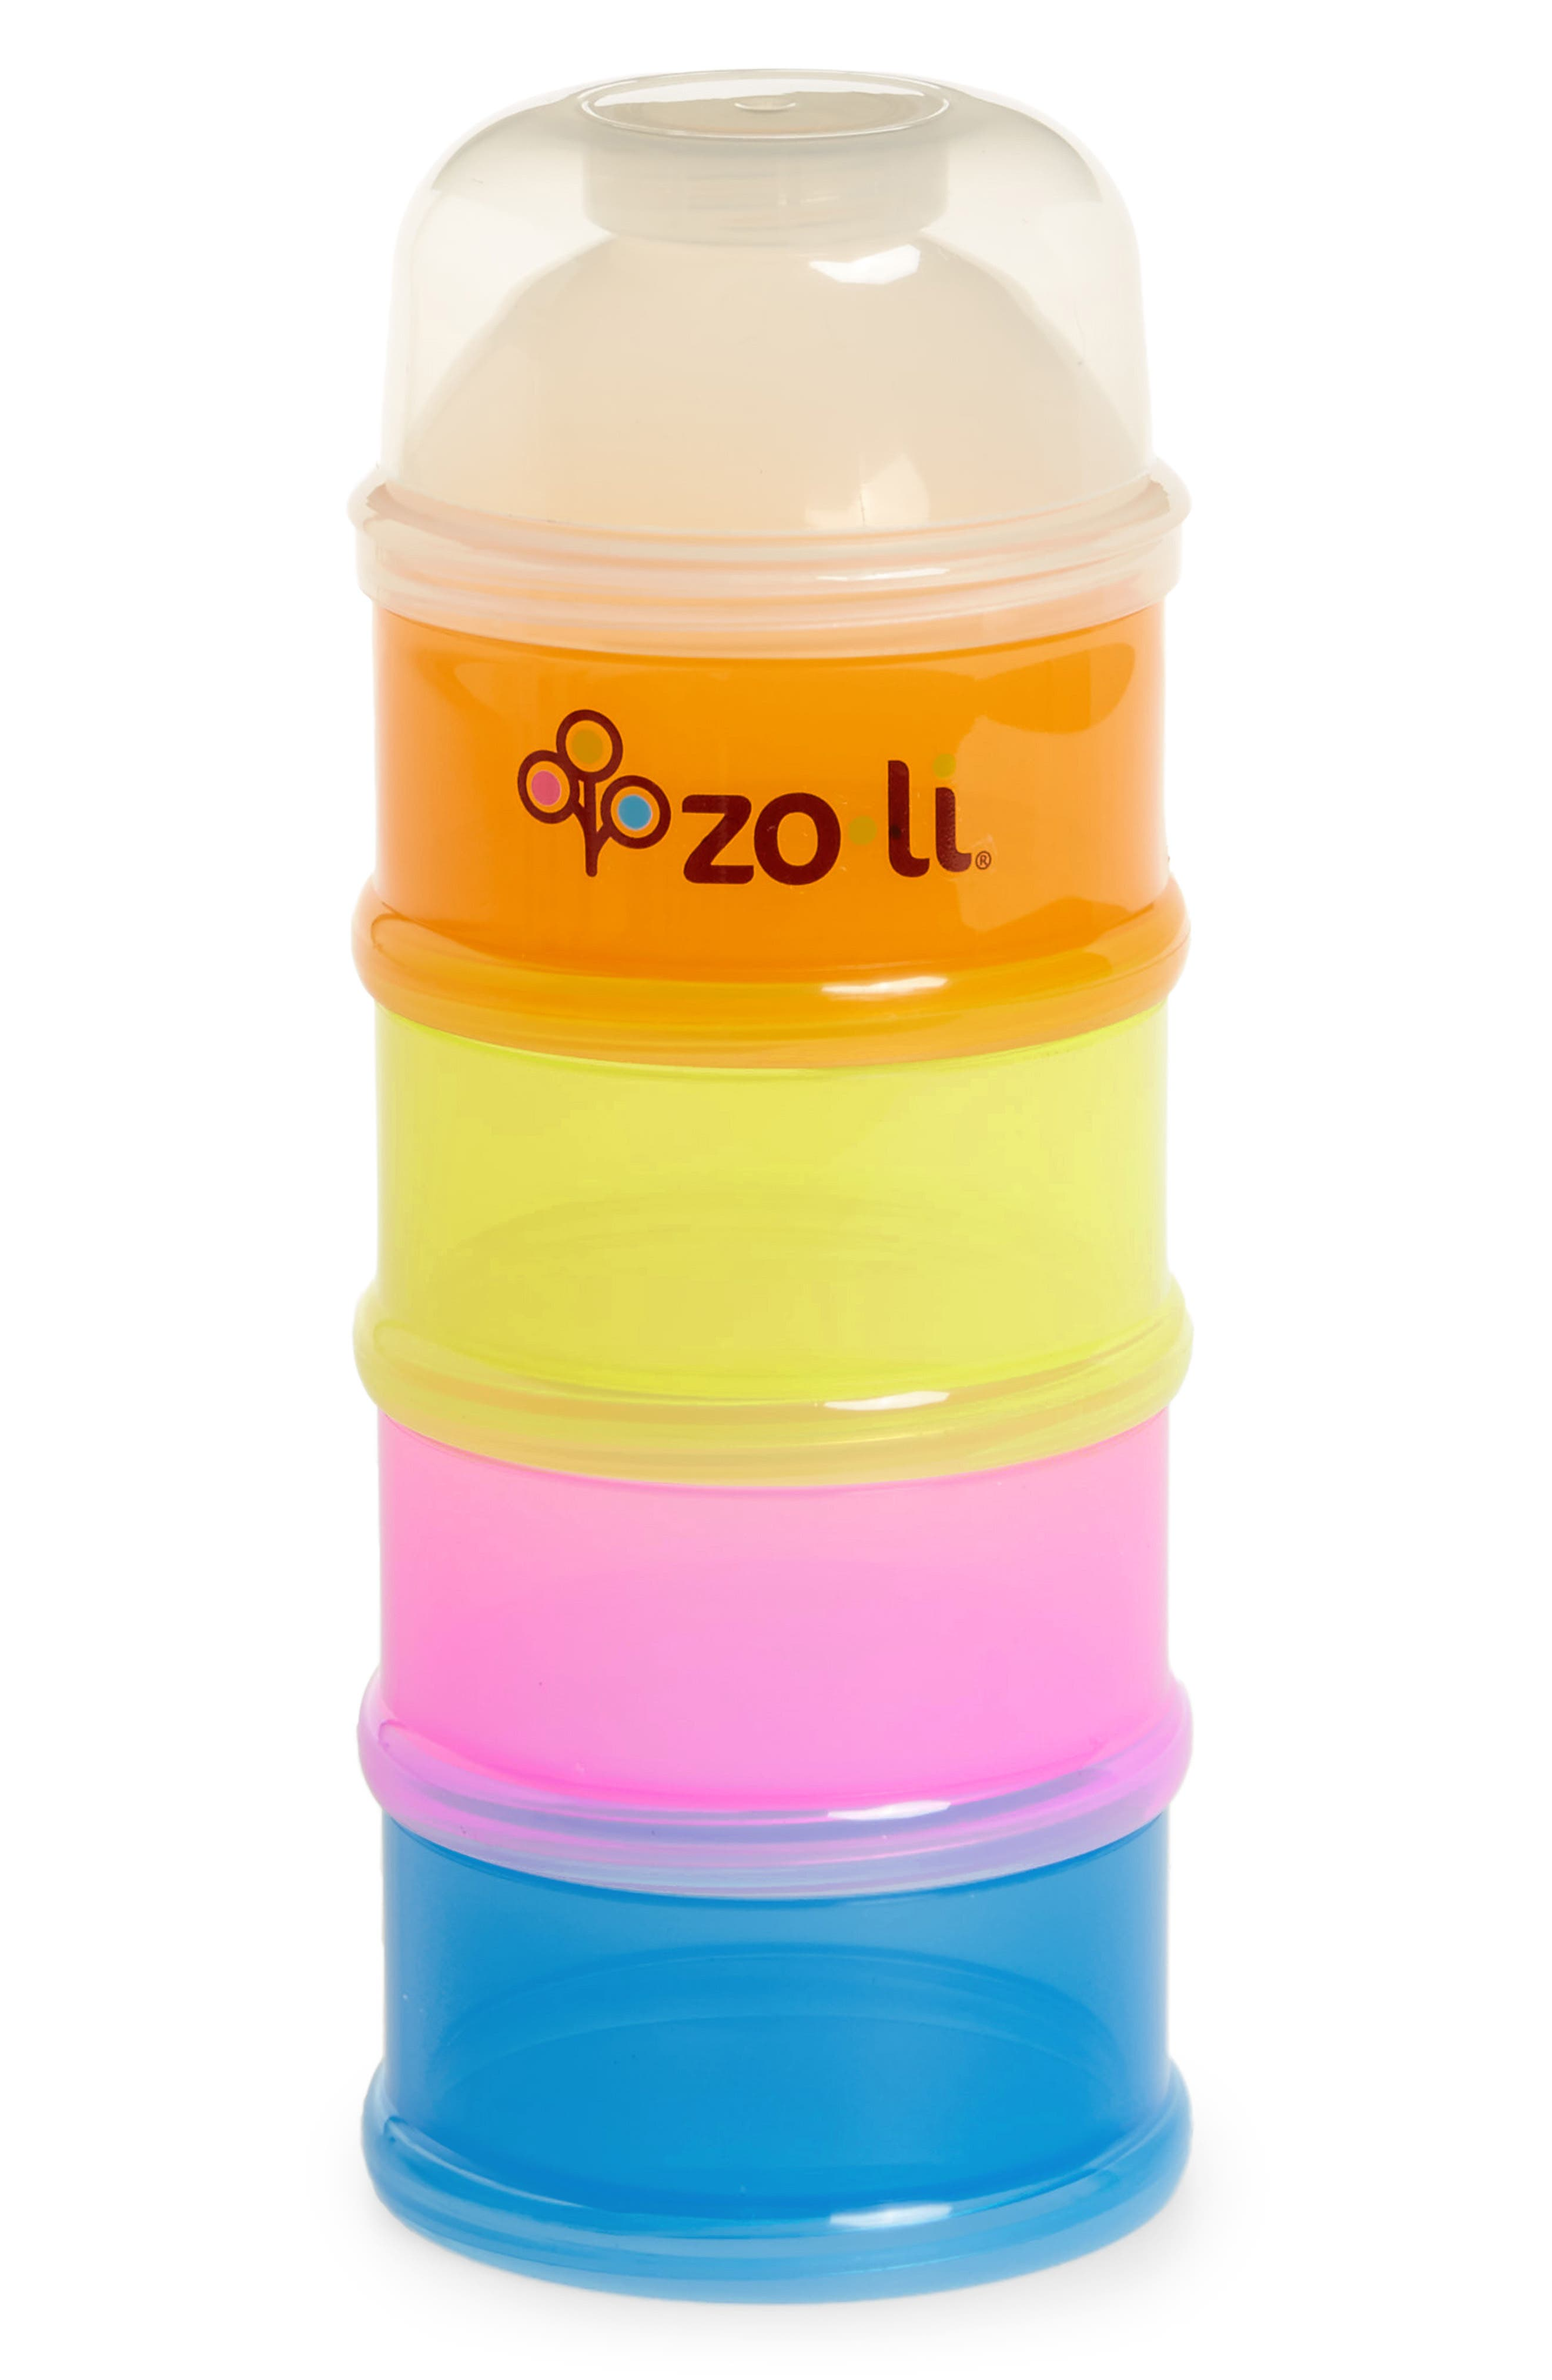 'On the Go' Snack & Formula Dispenser,                             Main thumbnail 1, color,                             960